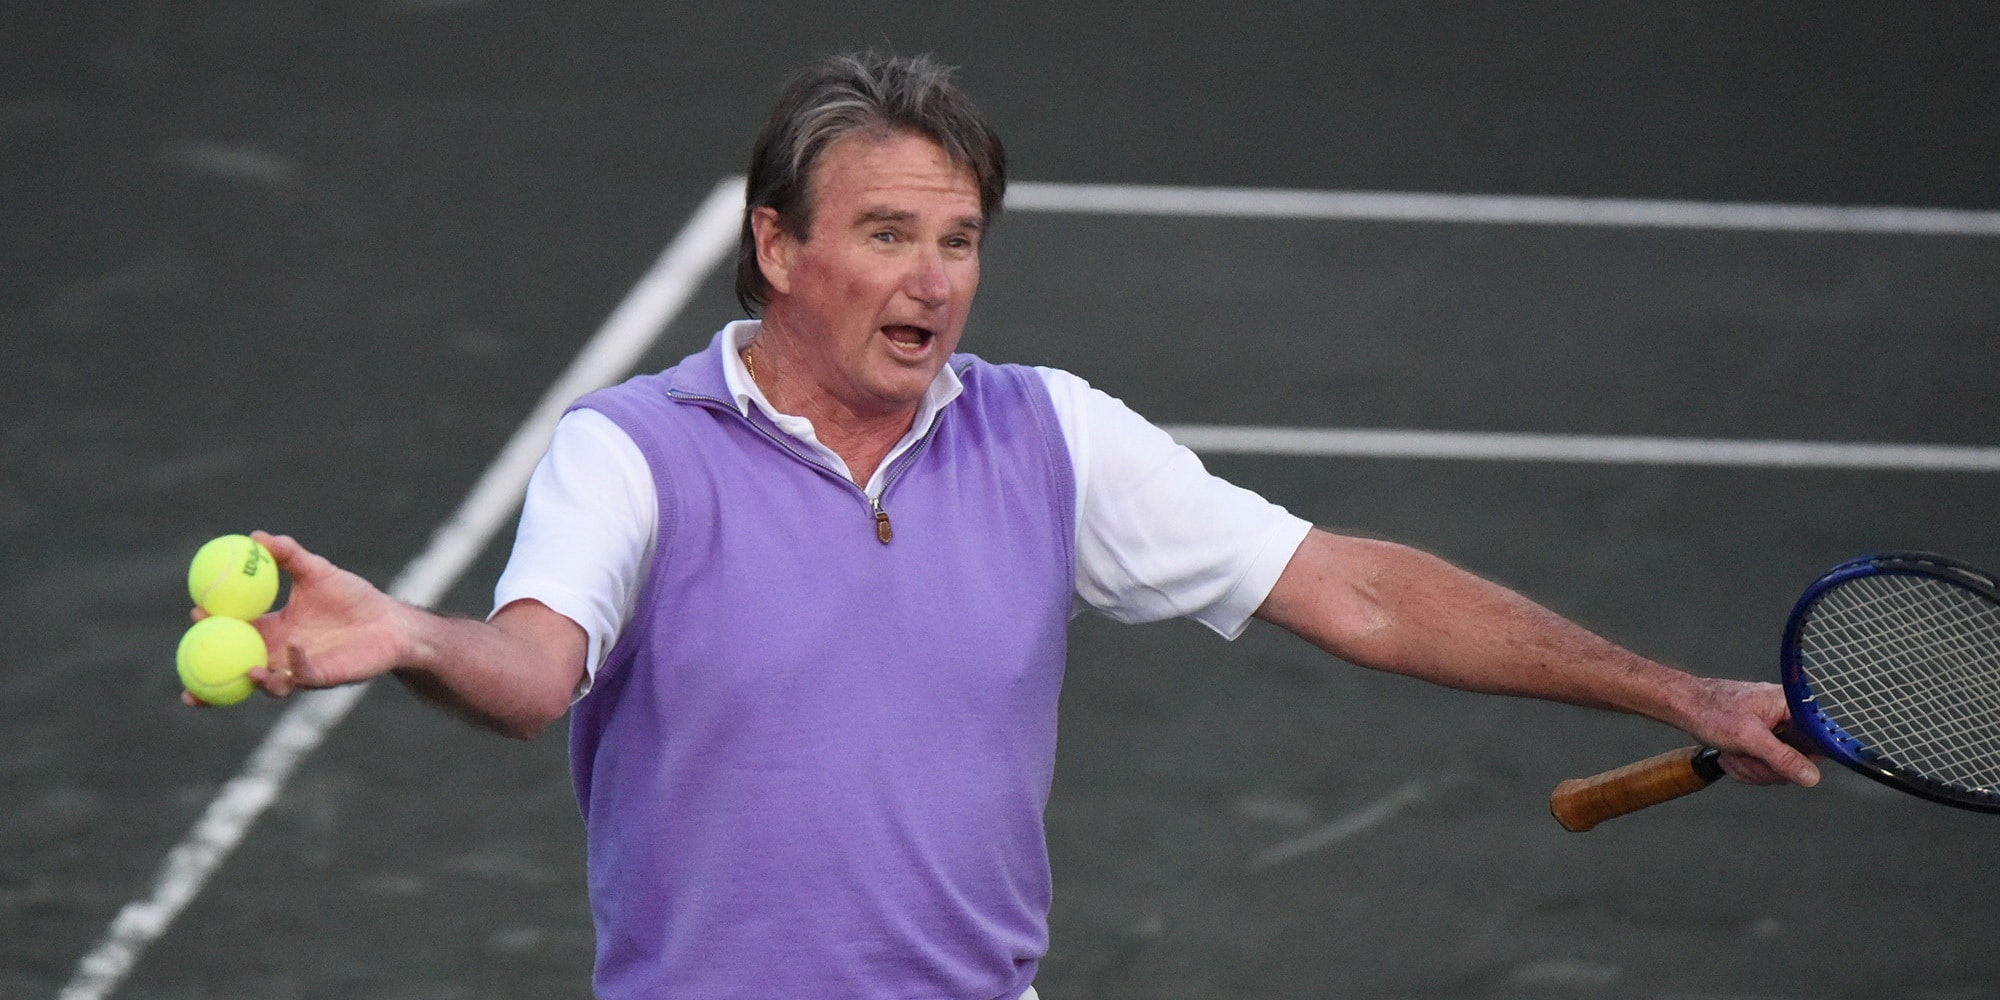 jimmy connors net worth 2017 2016 biography wiki updated